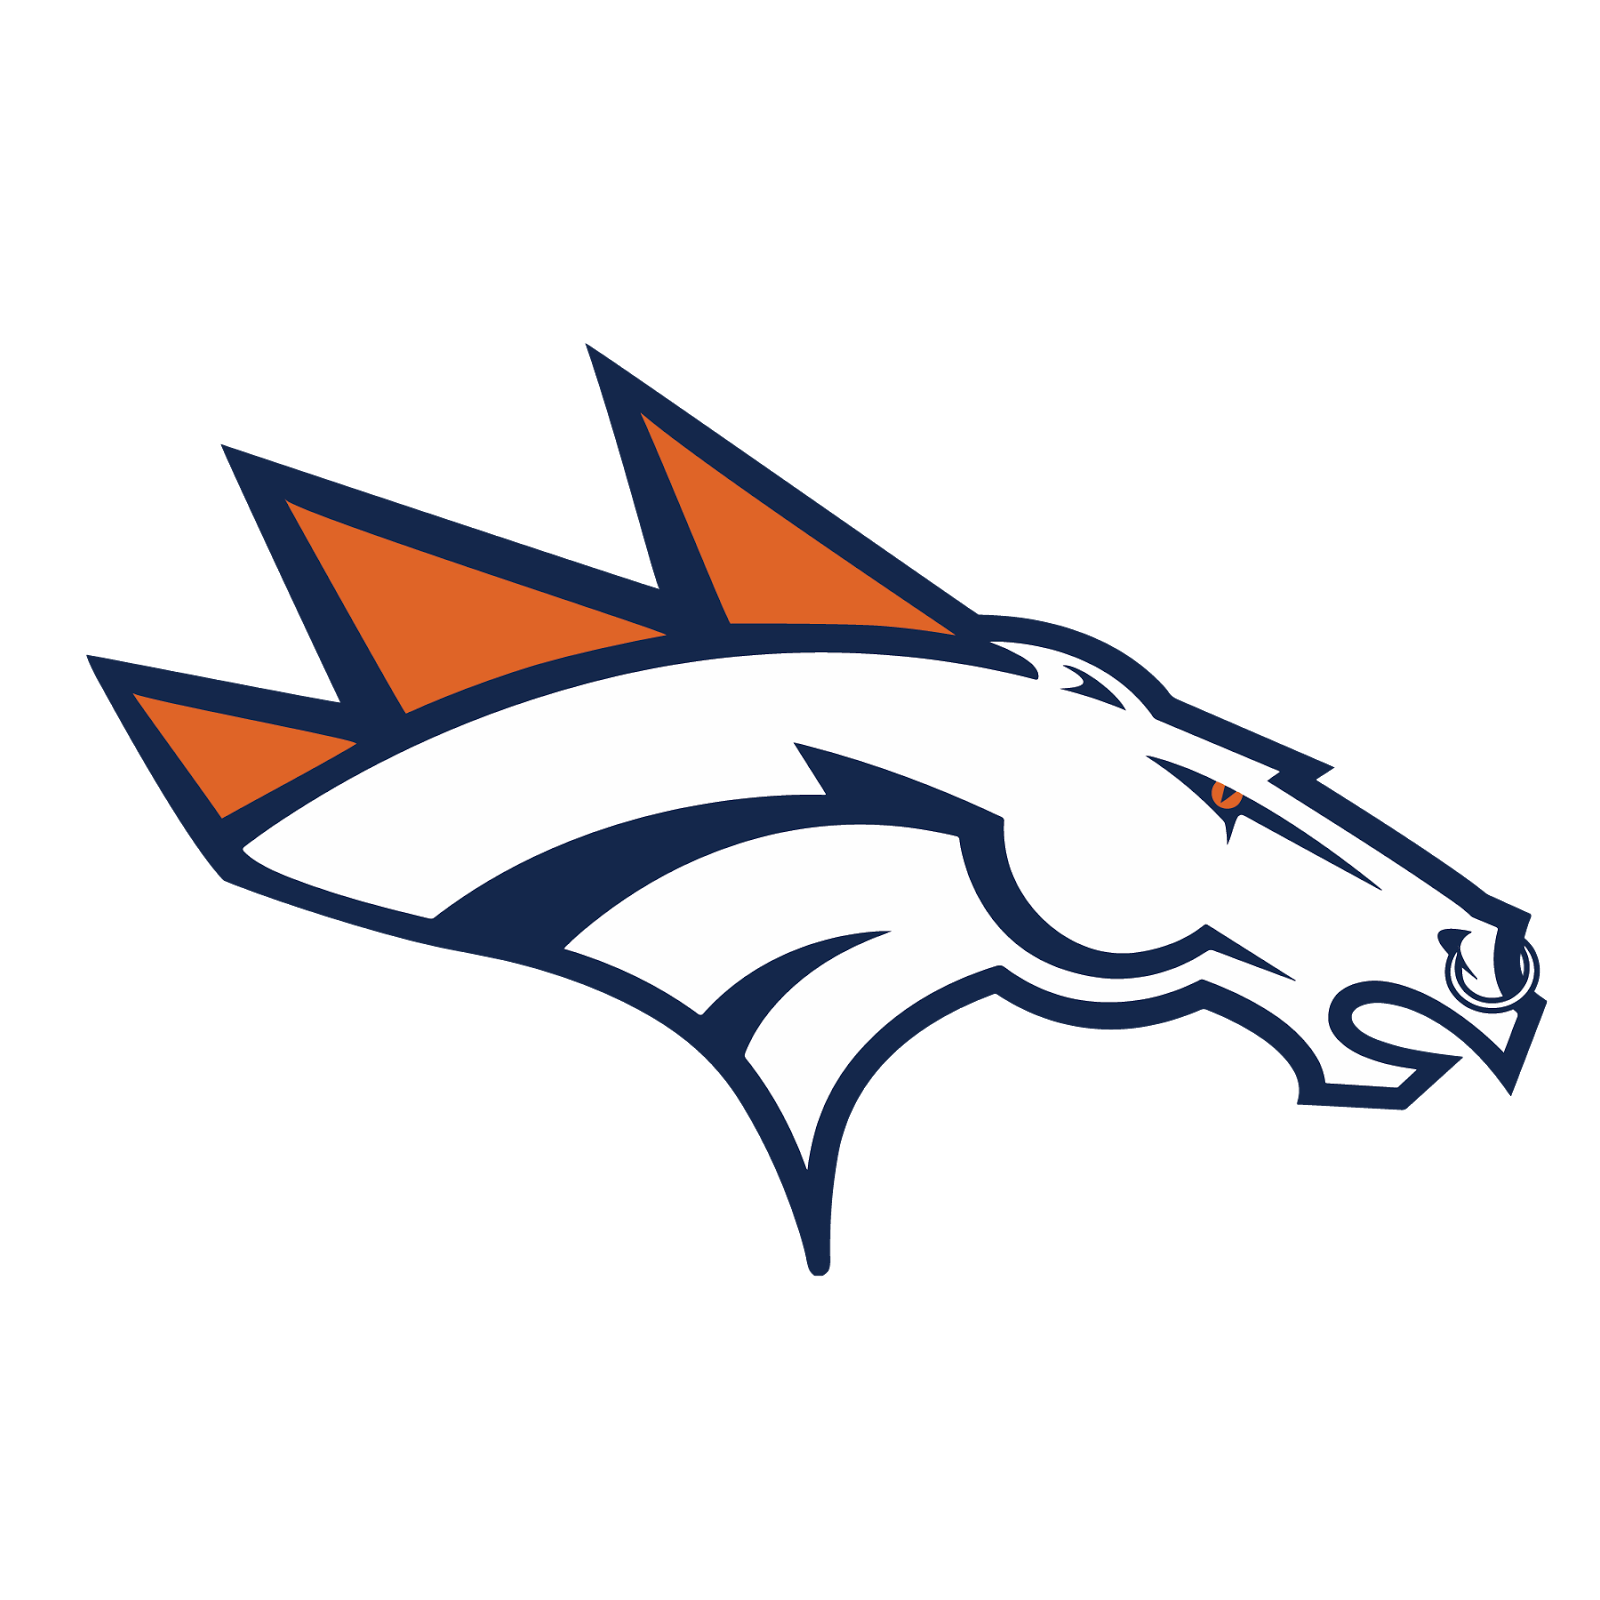 Denver Broncos, metal, logo, re-imagined